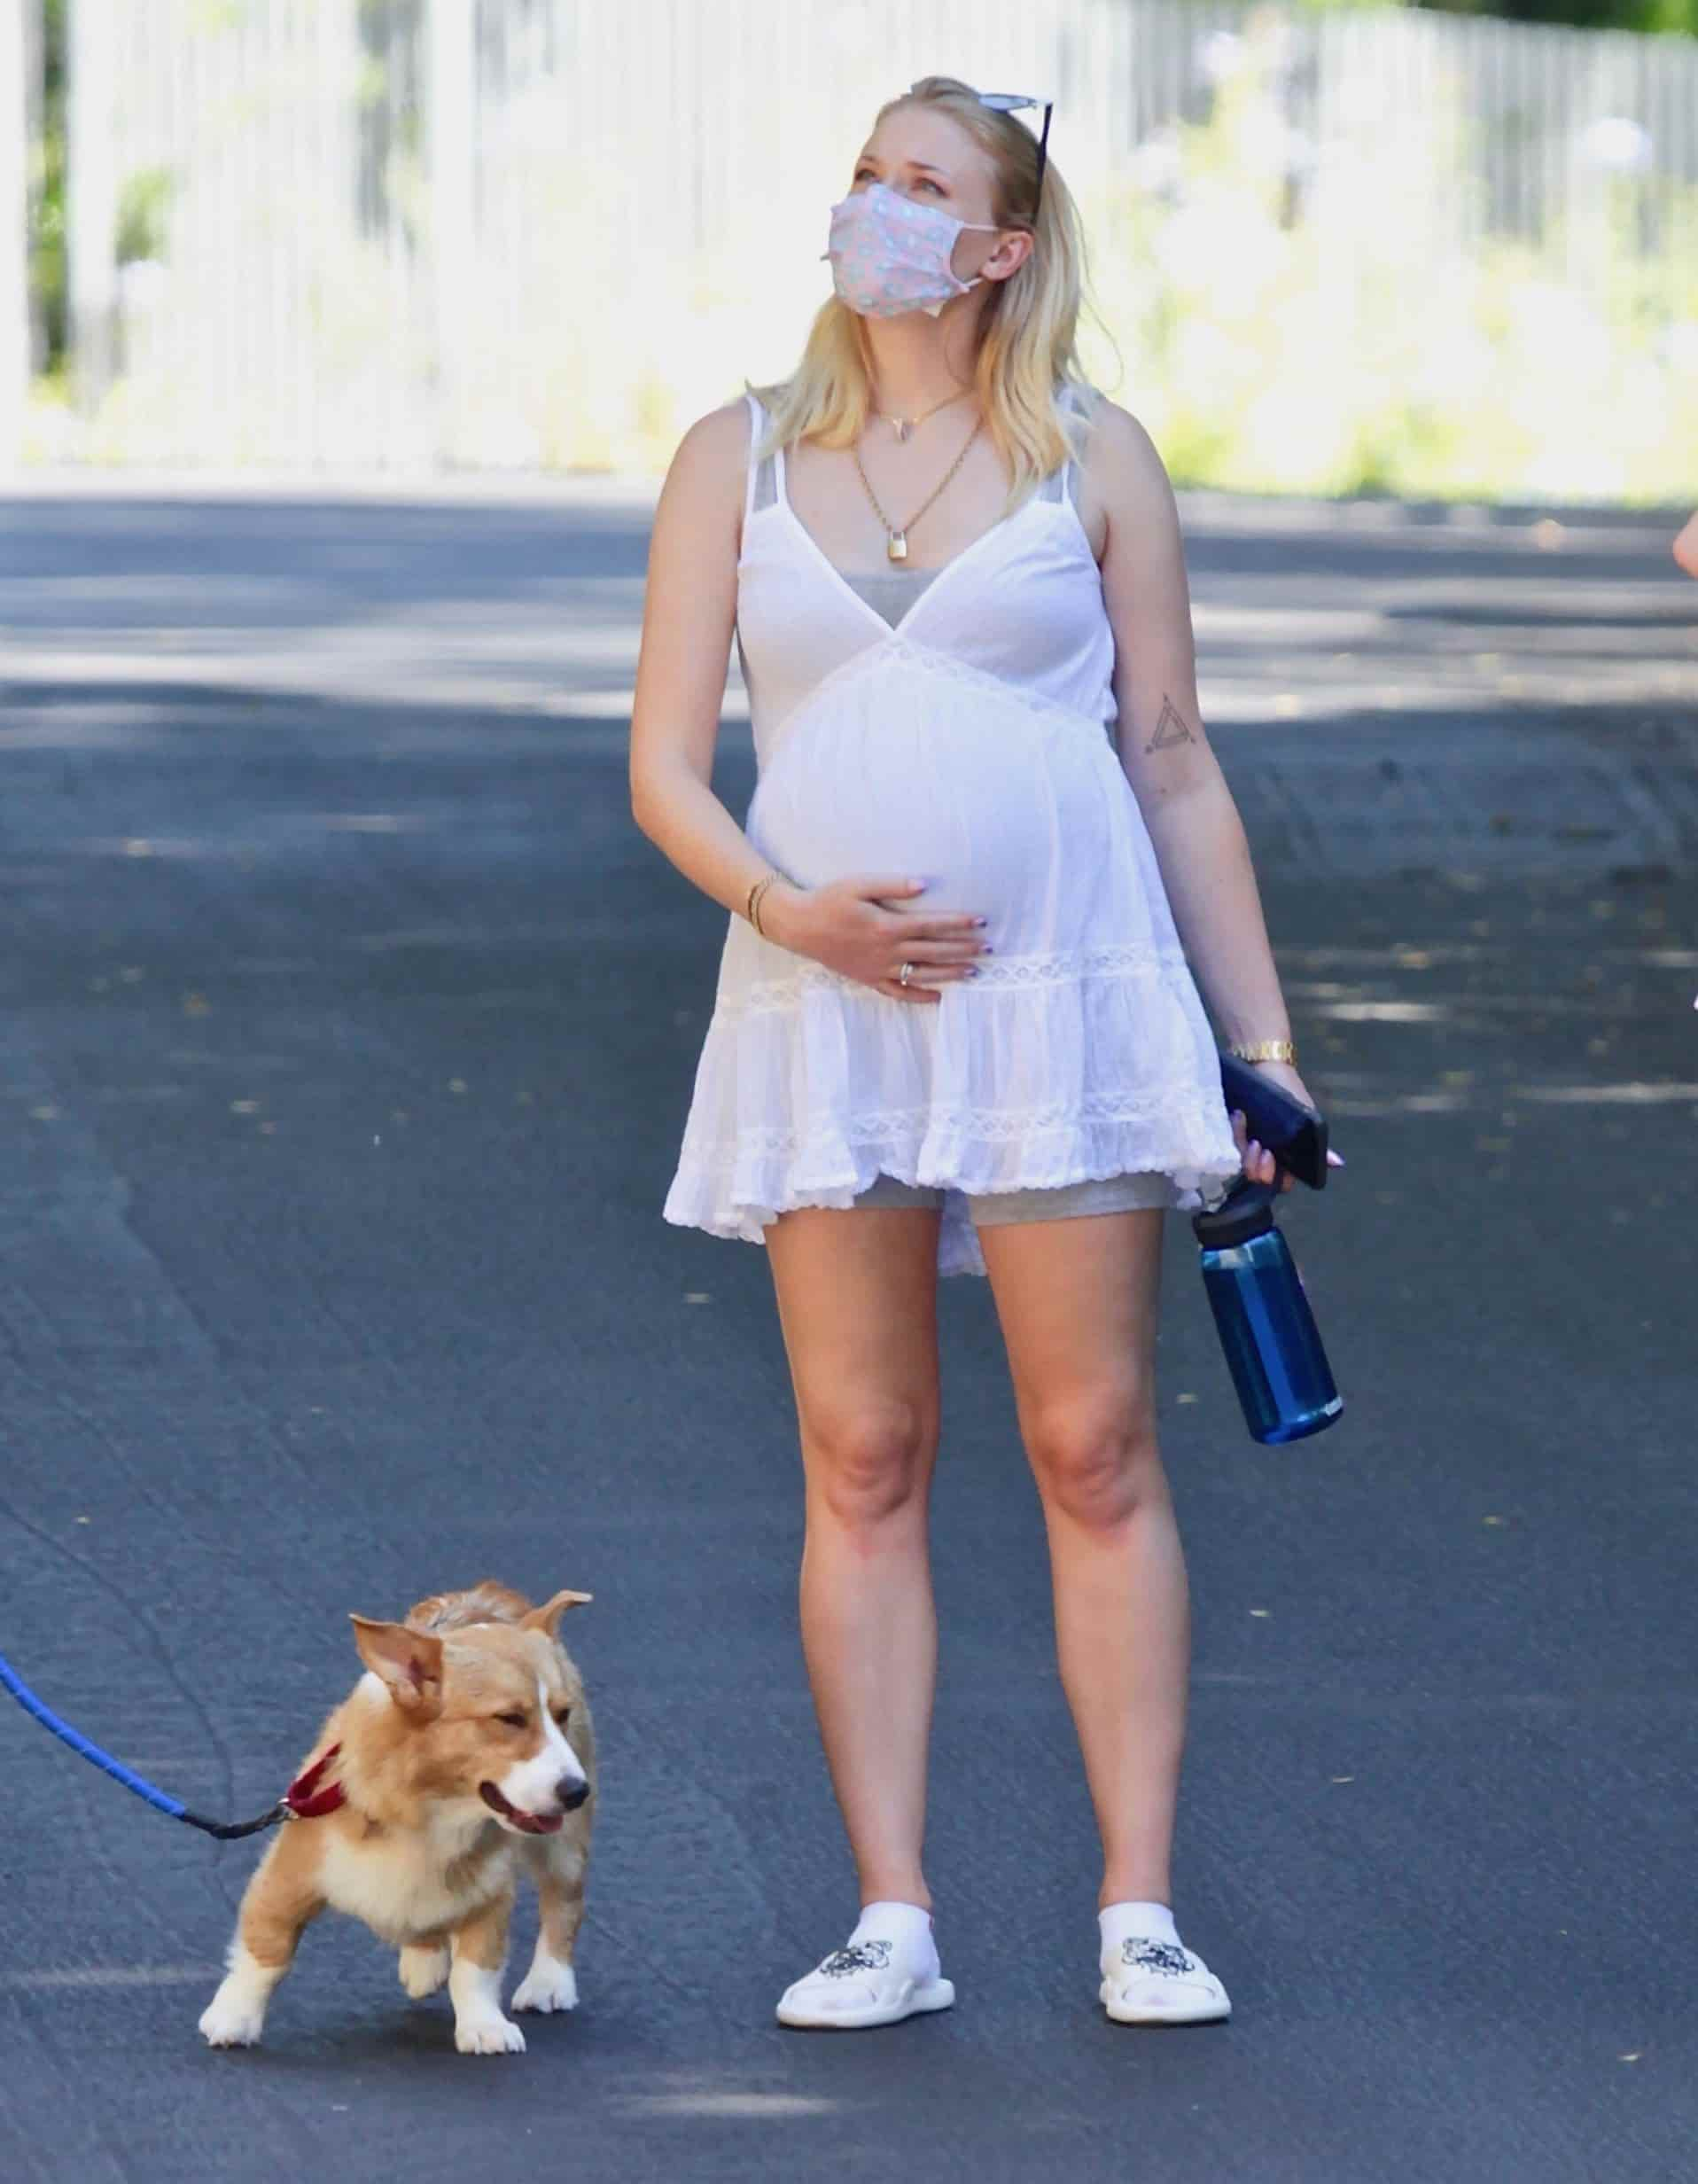 sophie turner wearing white dress and cute little skirt taking a walk with a dog while she was pregnant